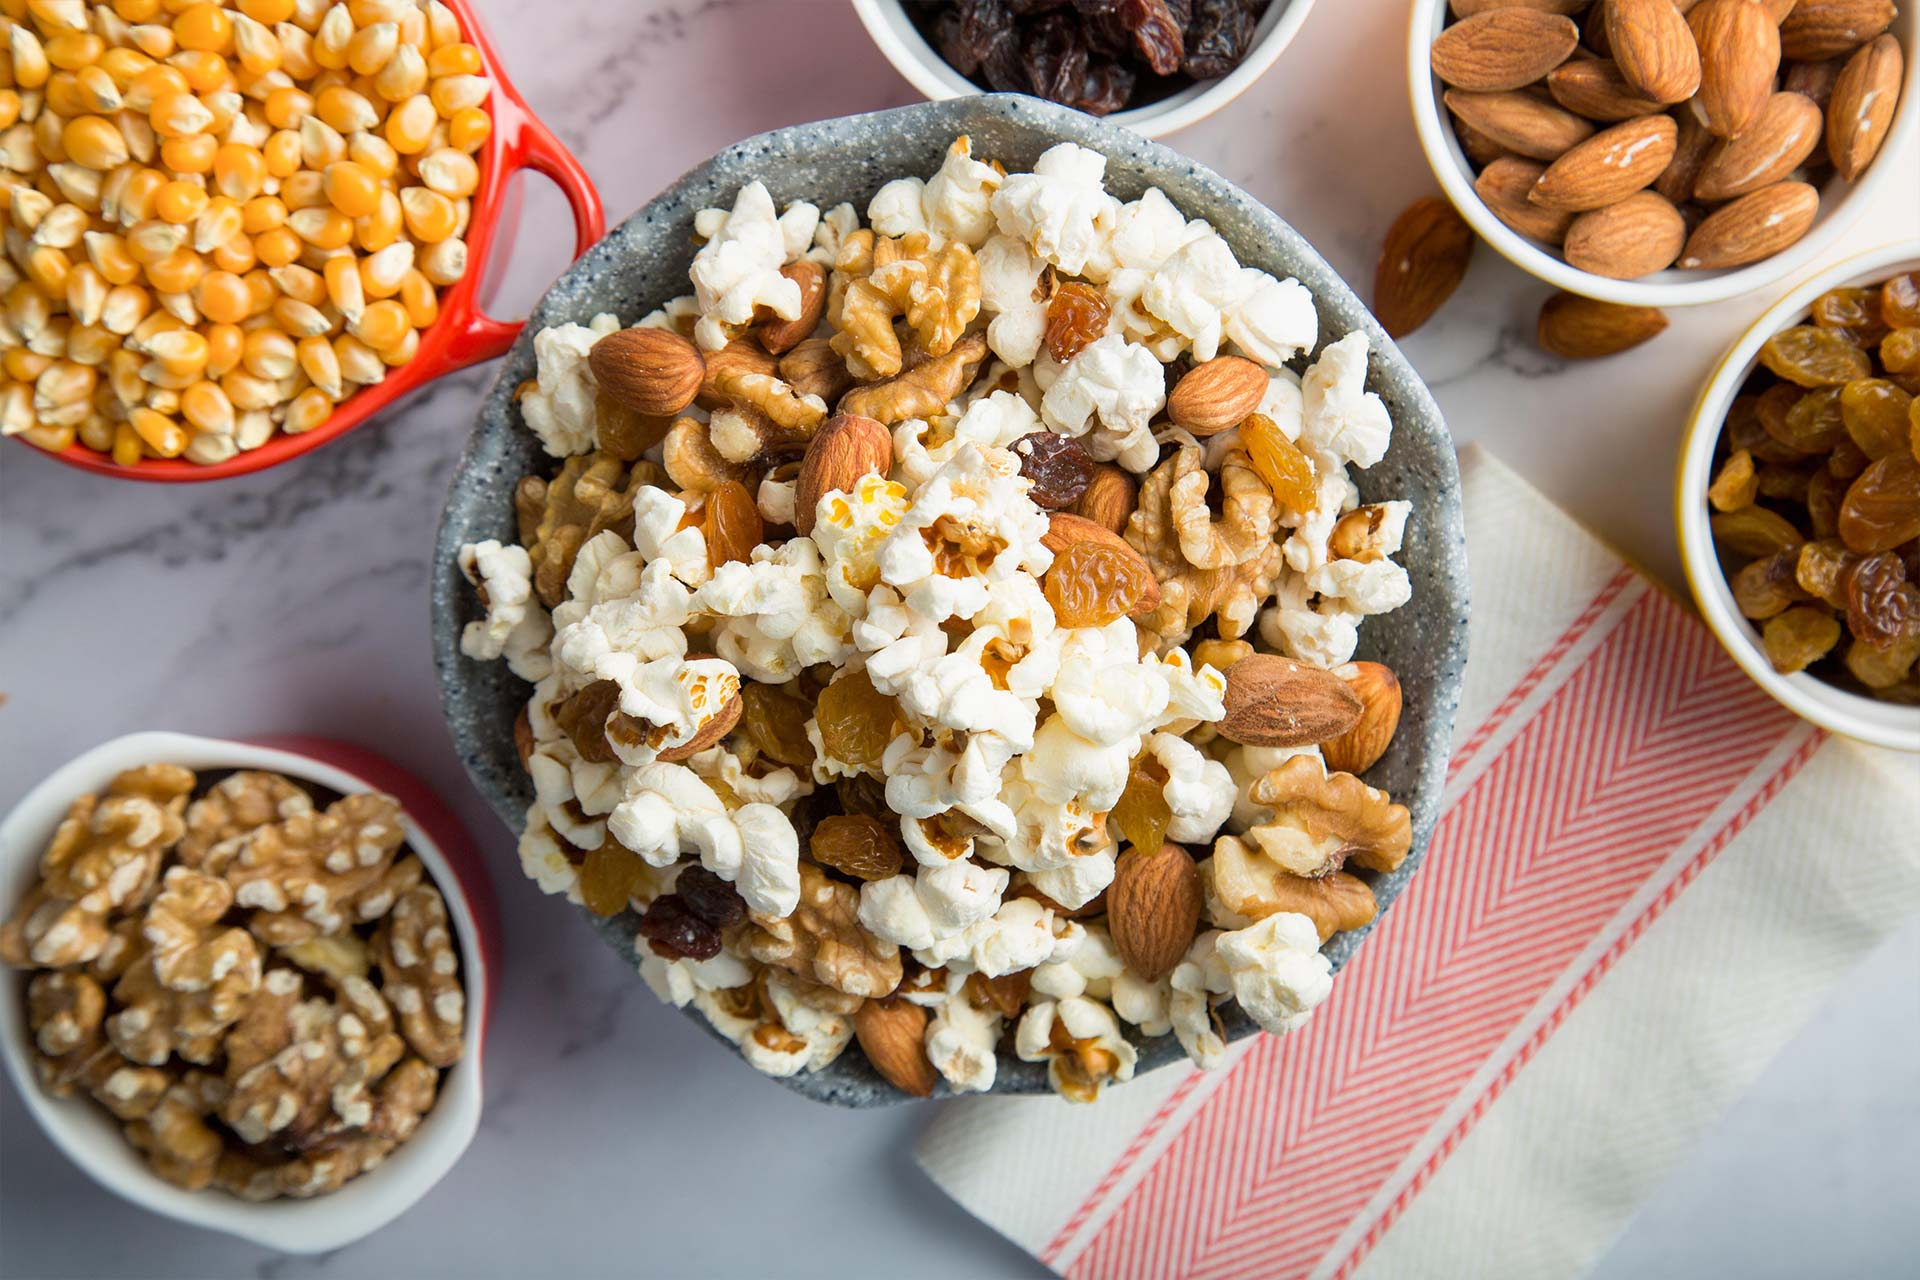 Almond, Walnut, Raisin & Popcorn Trail Mix